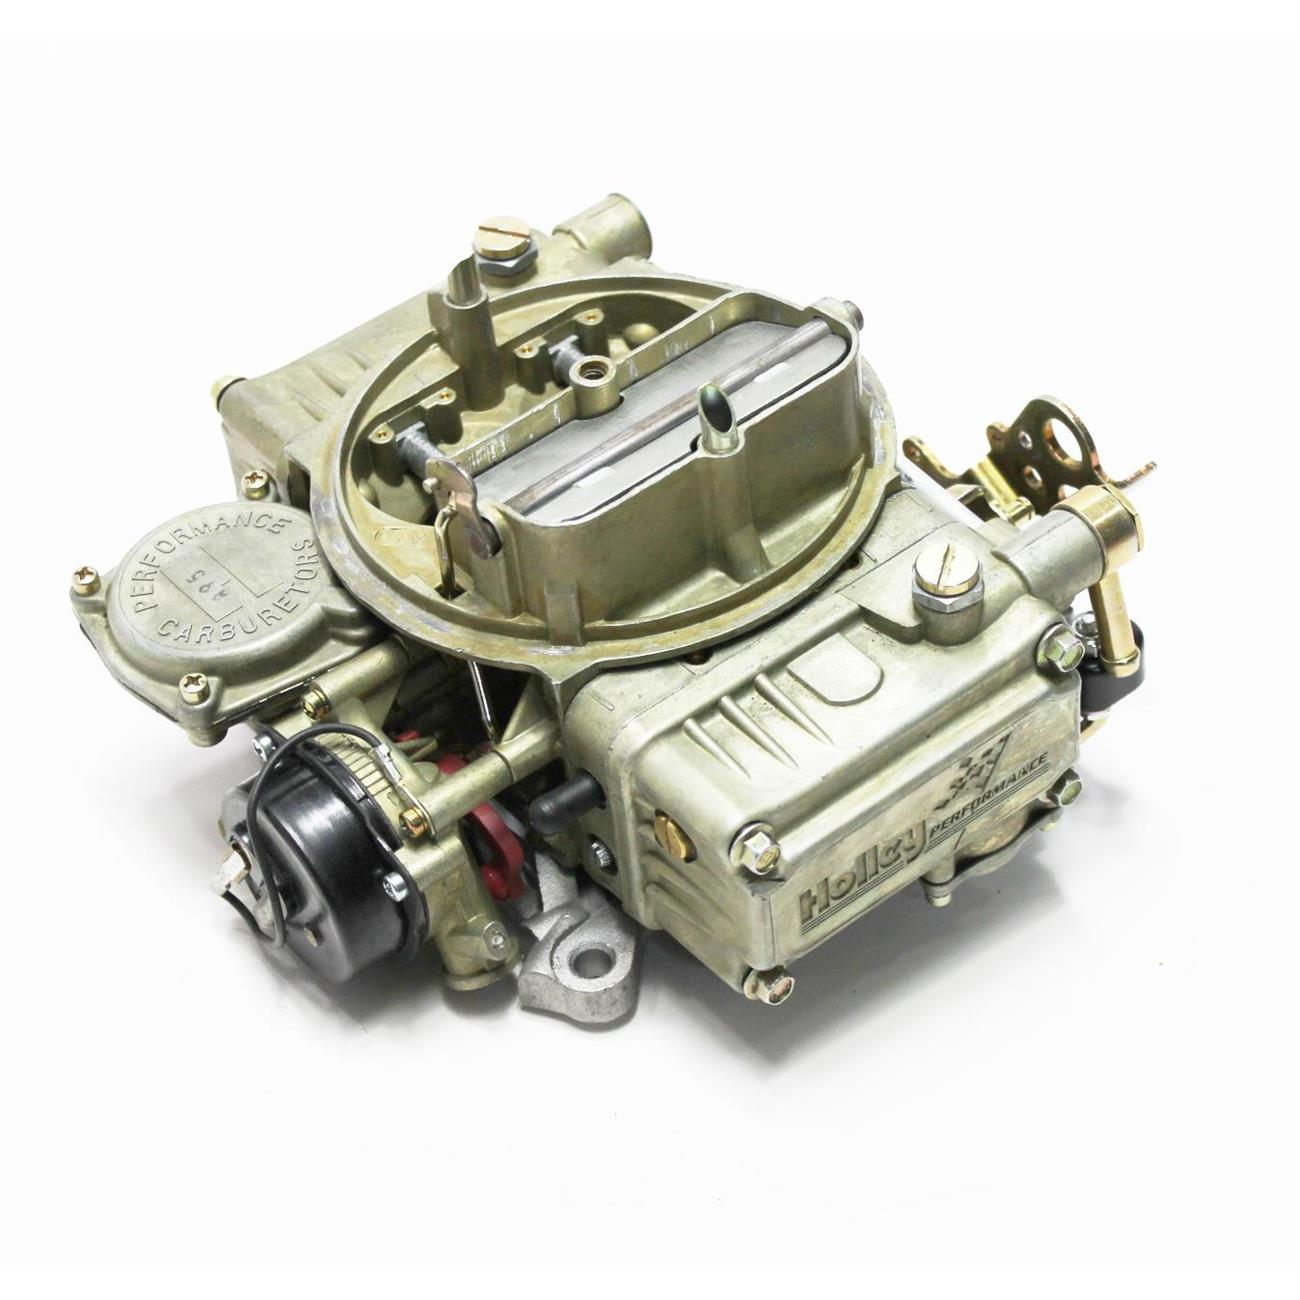 98 f150 4 6l engine autos post for F150 motor for sale